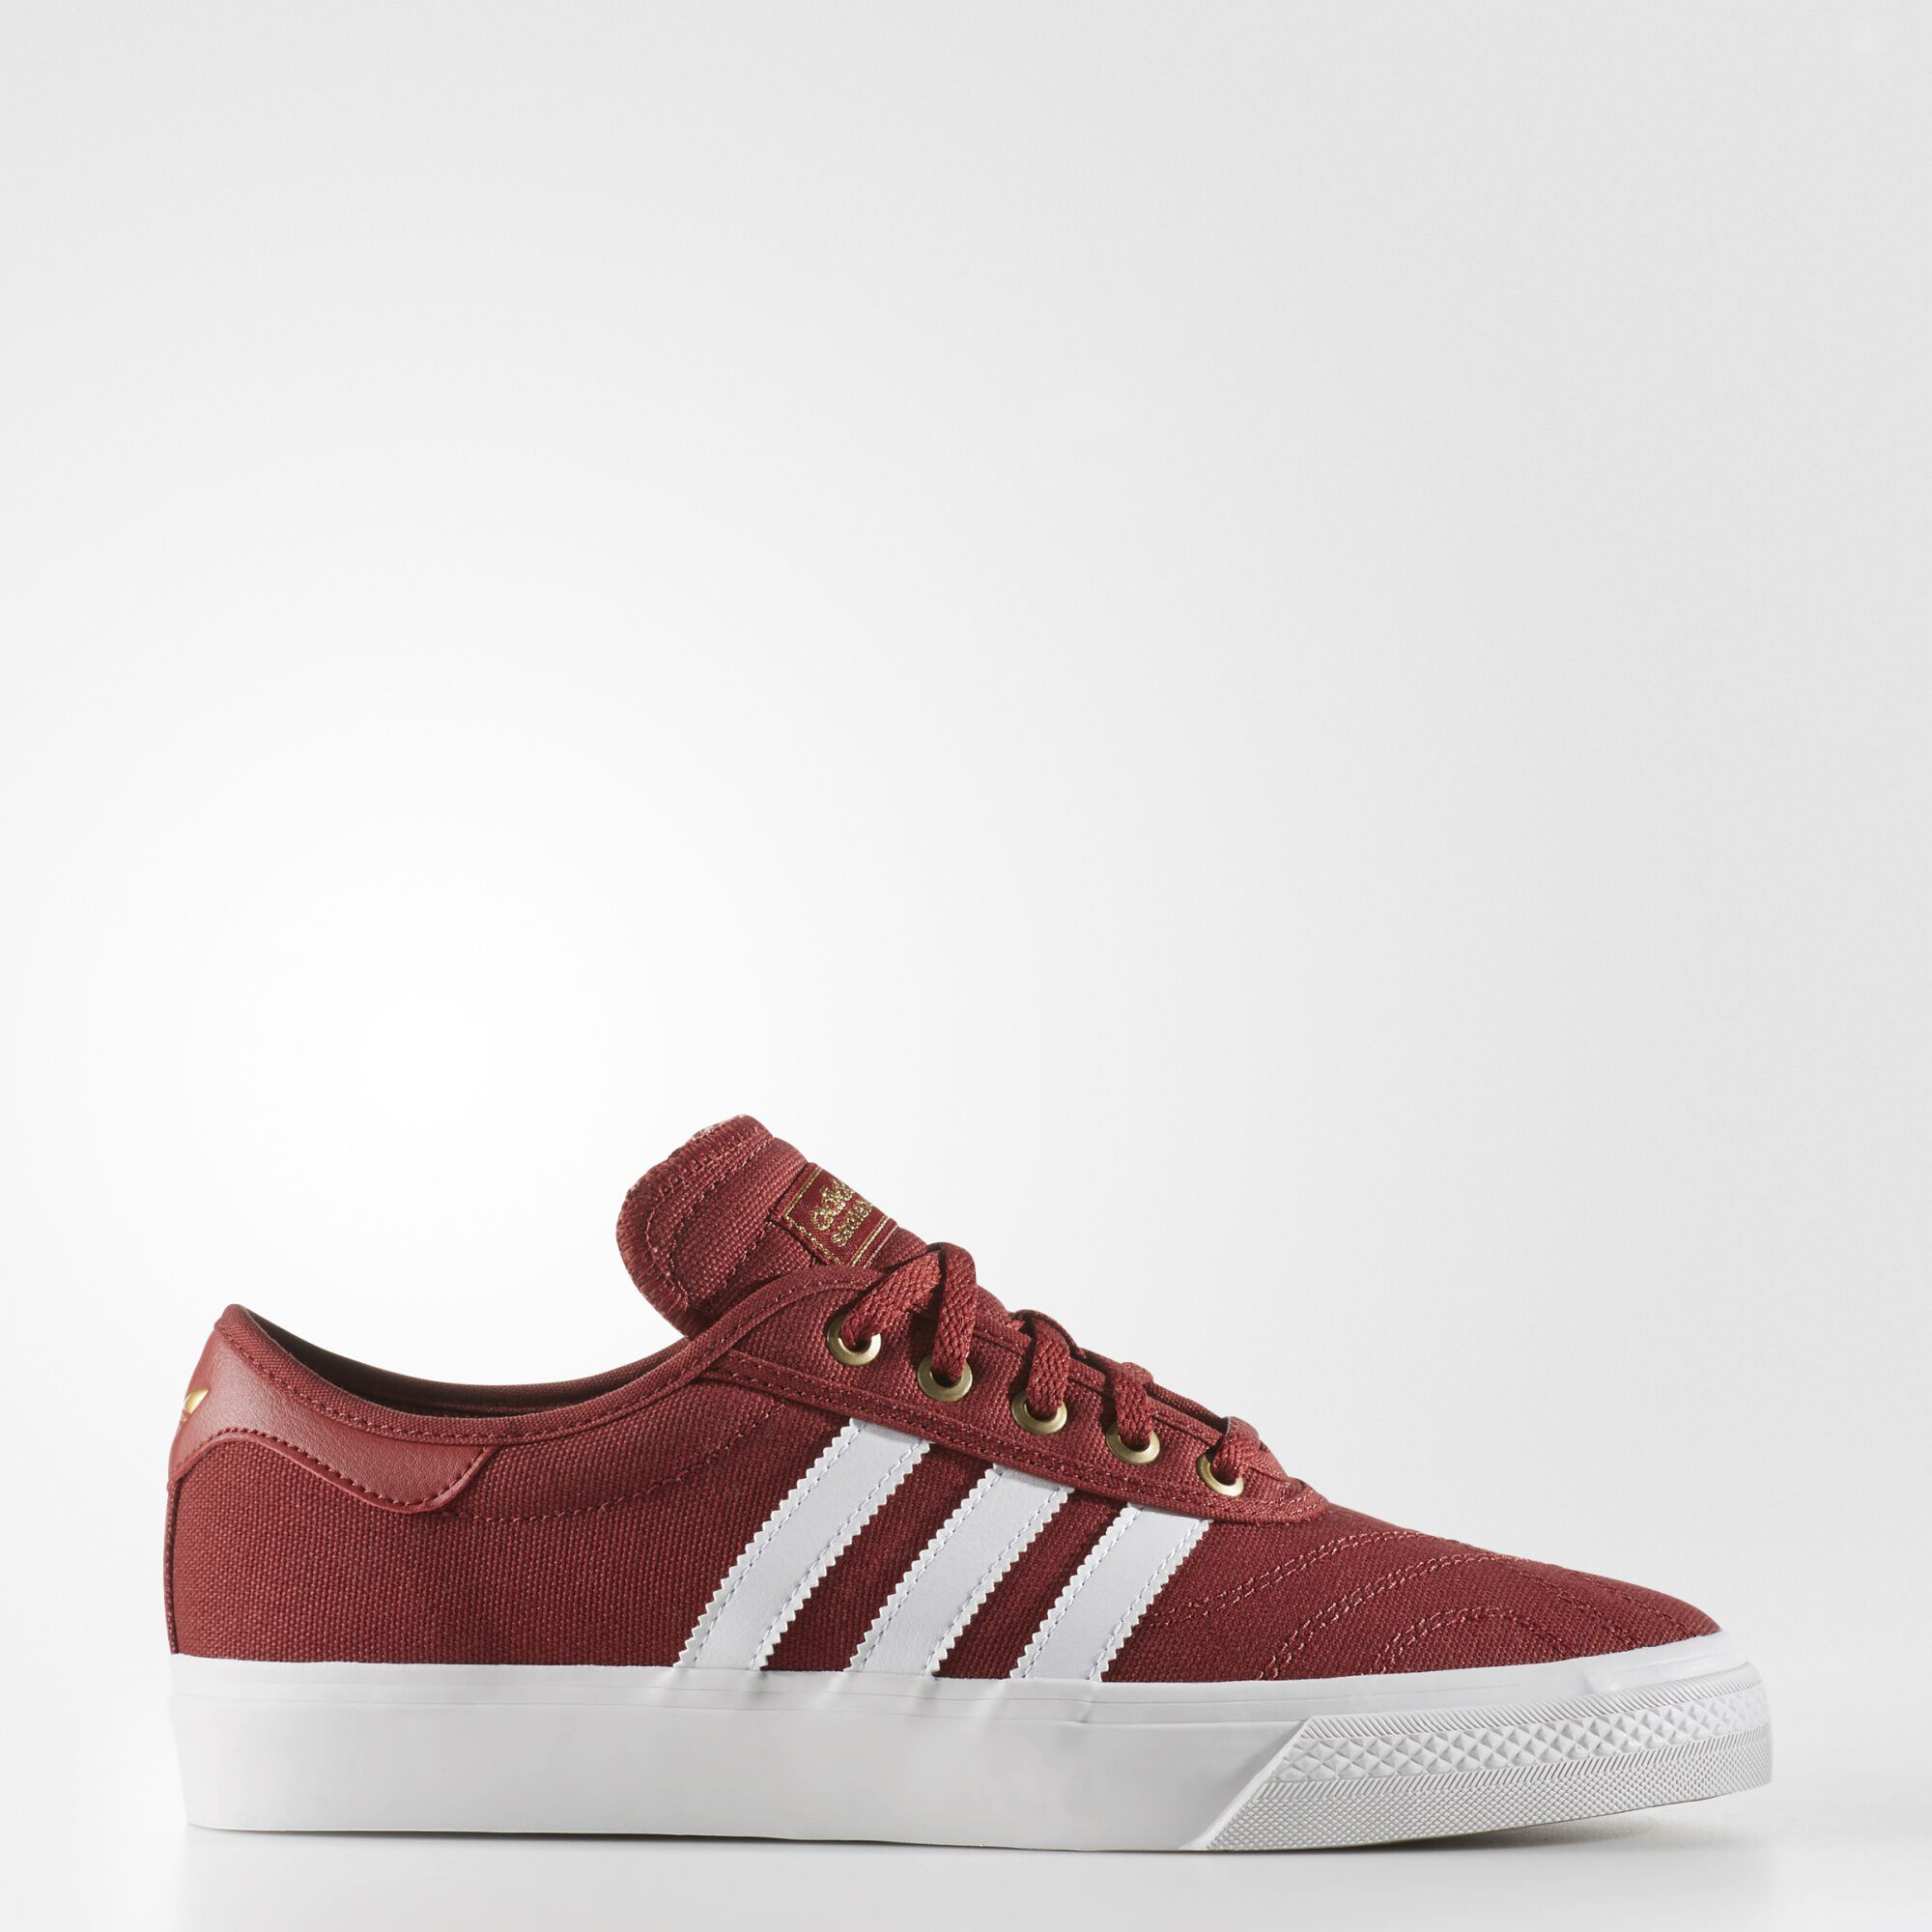 free shipping 987c2 8f2c0 adidas neo leather red gold